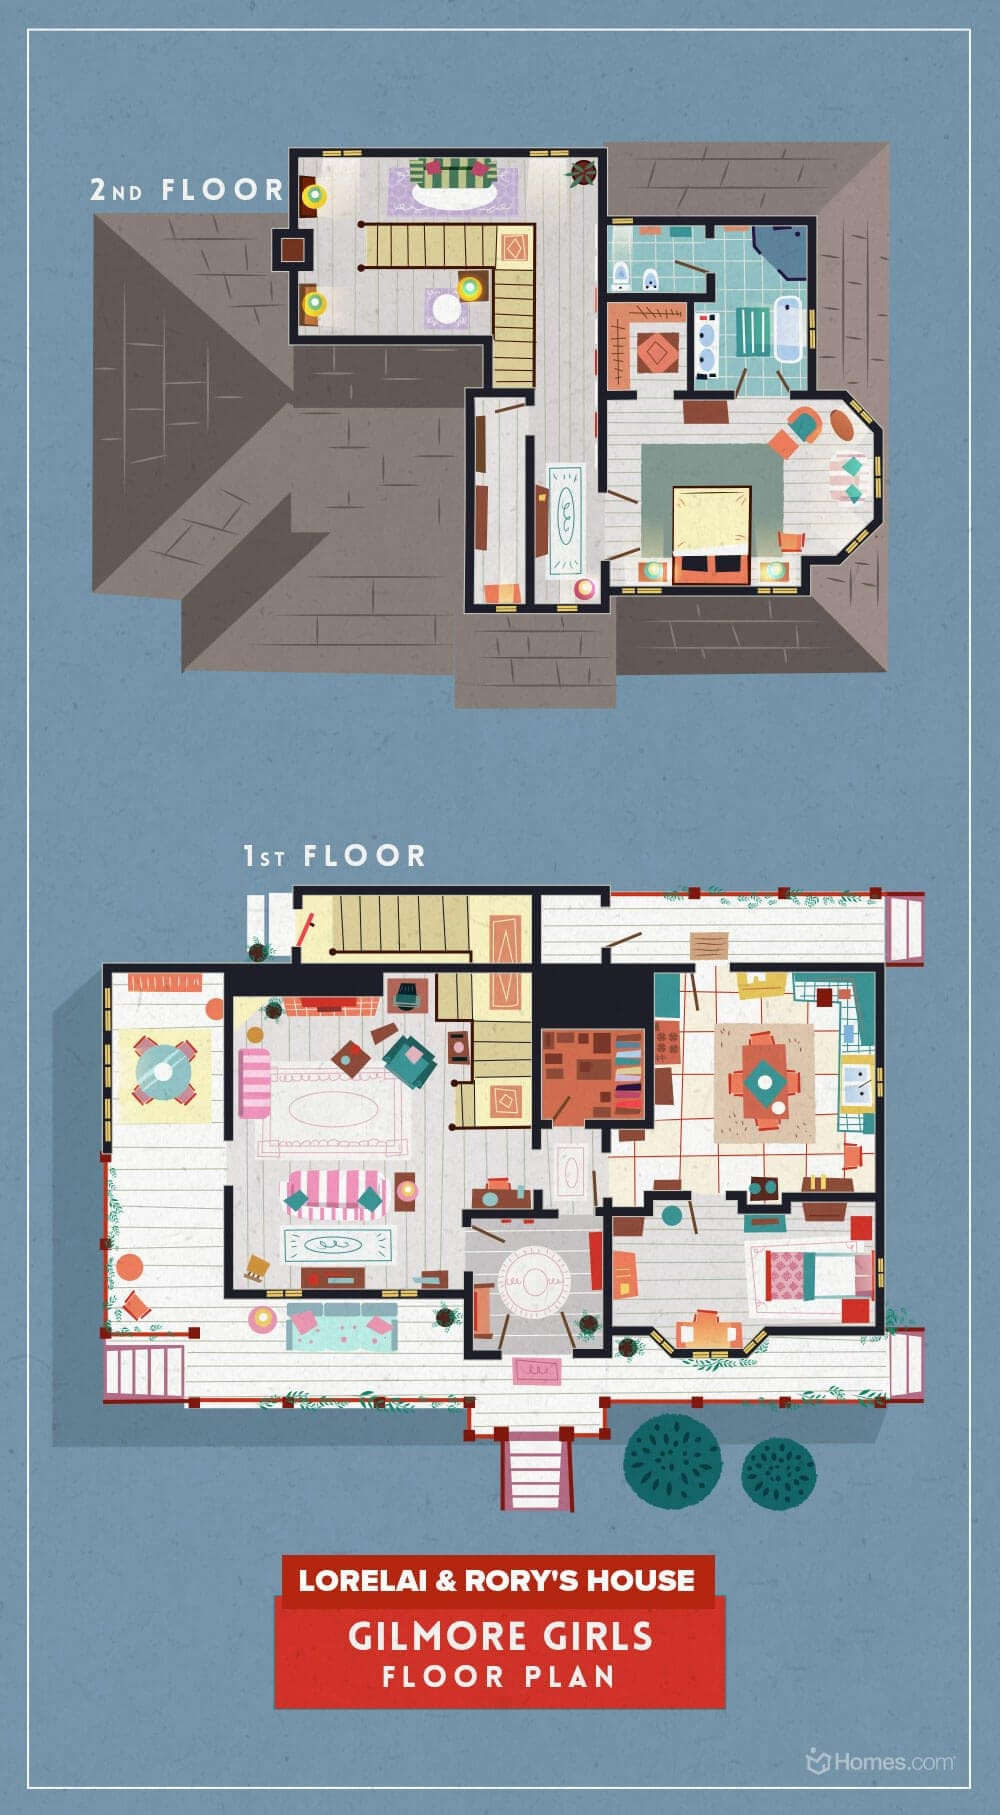 home-floor-plans-illustrations-4